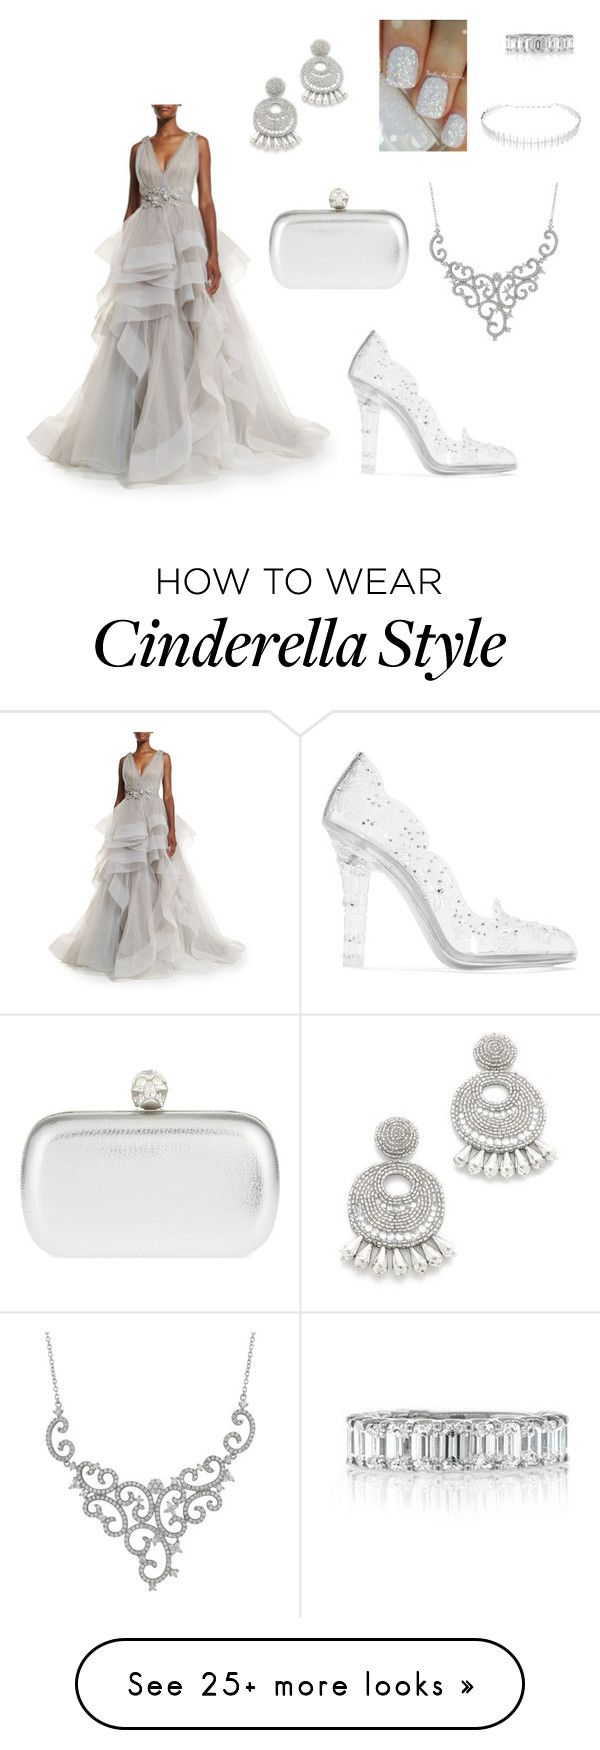 """Silver slipper"" by mehrak on Polyvore featuring Marchesa, Dolce&Gabbana, Alexander McQueen, Kenneth Jay Lane, Luxiro, Kamushki and Mark Broumand"